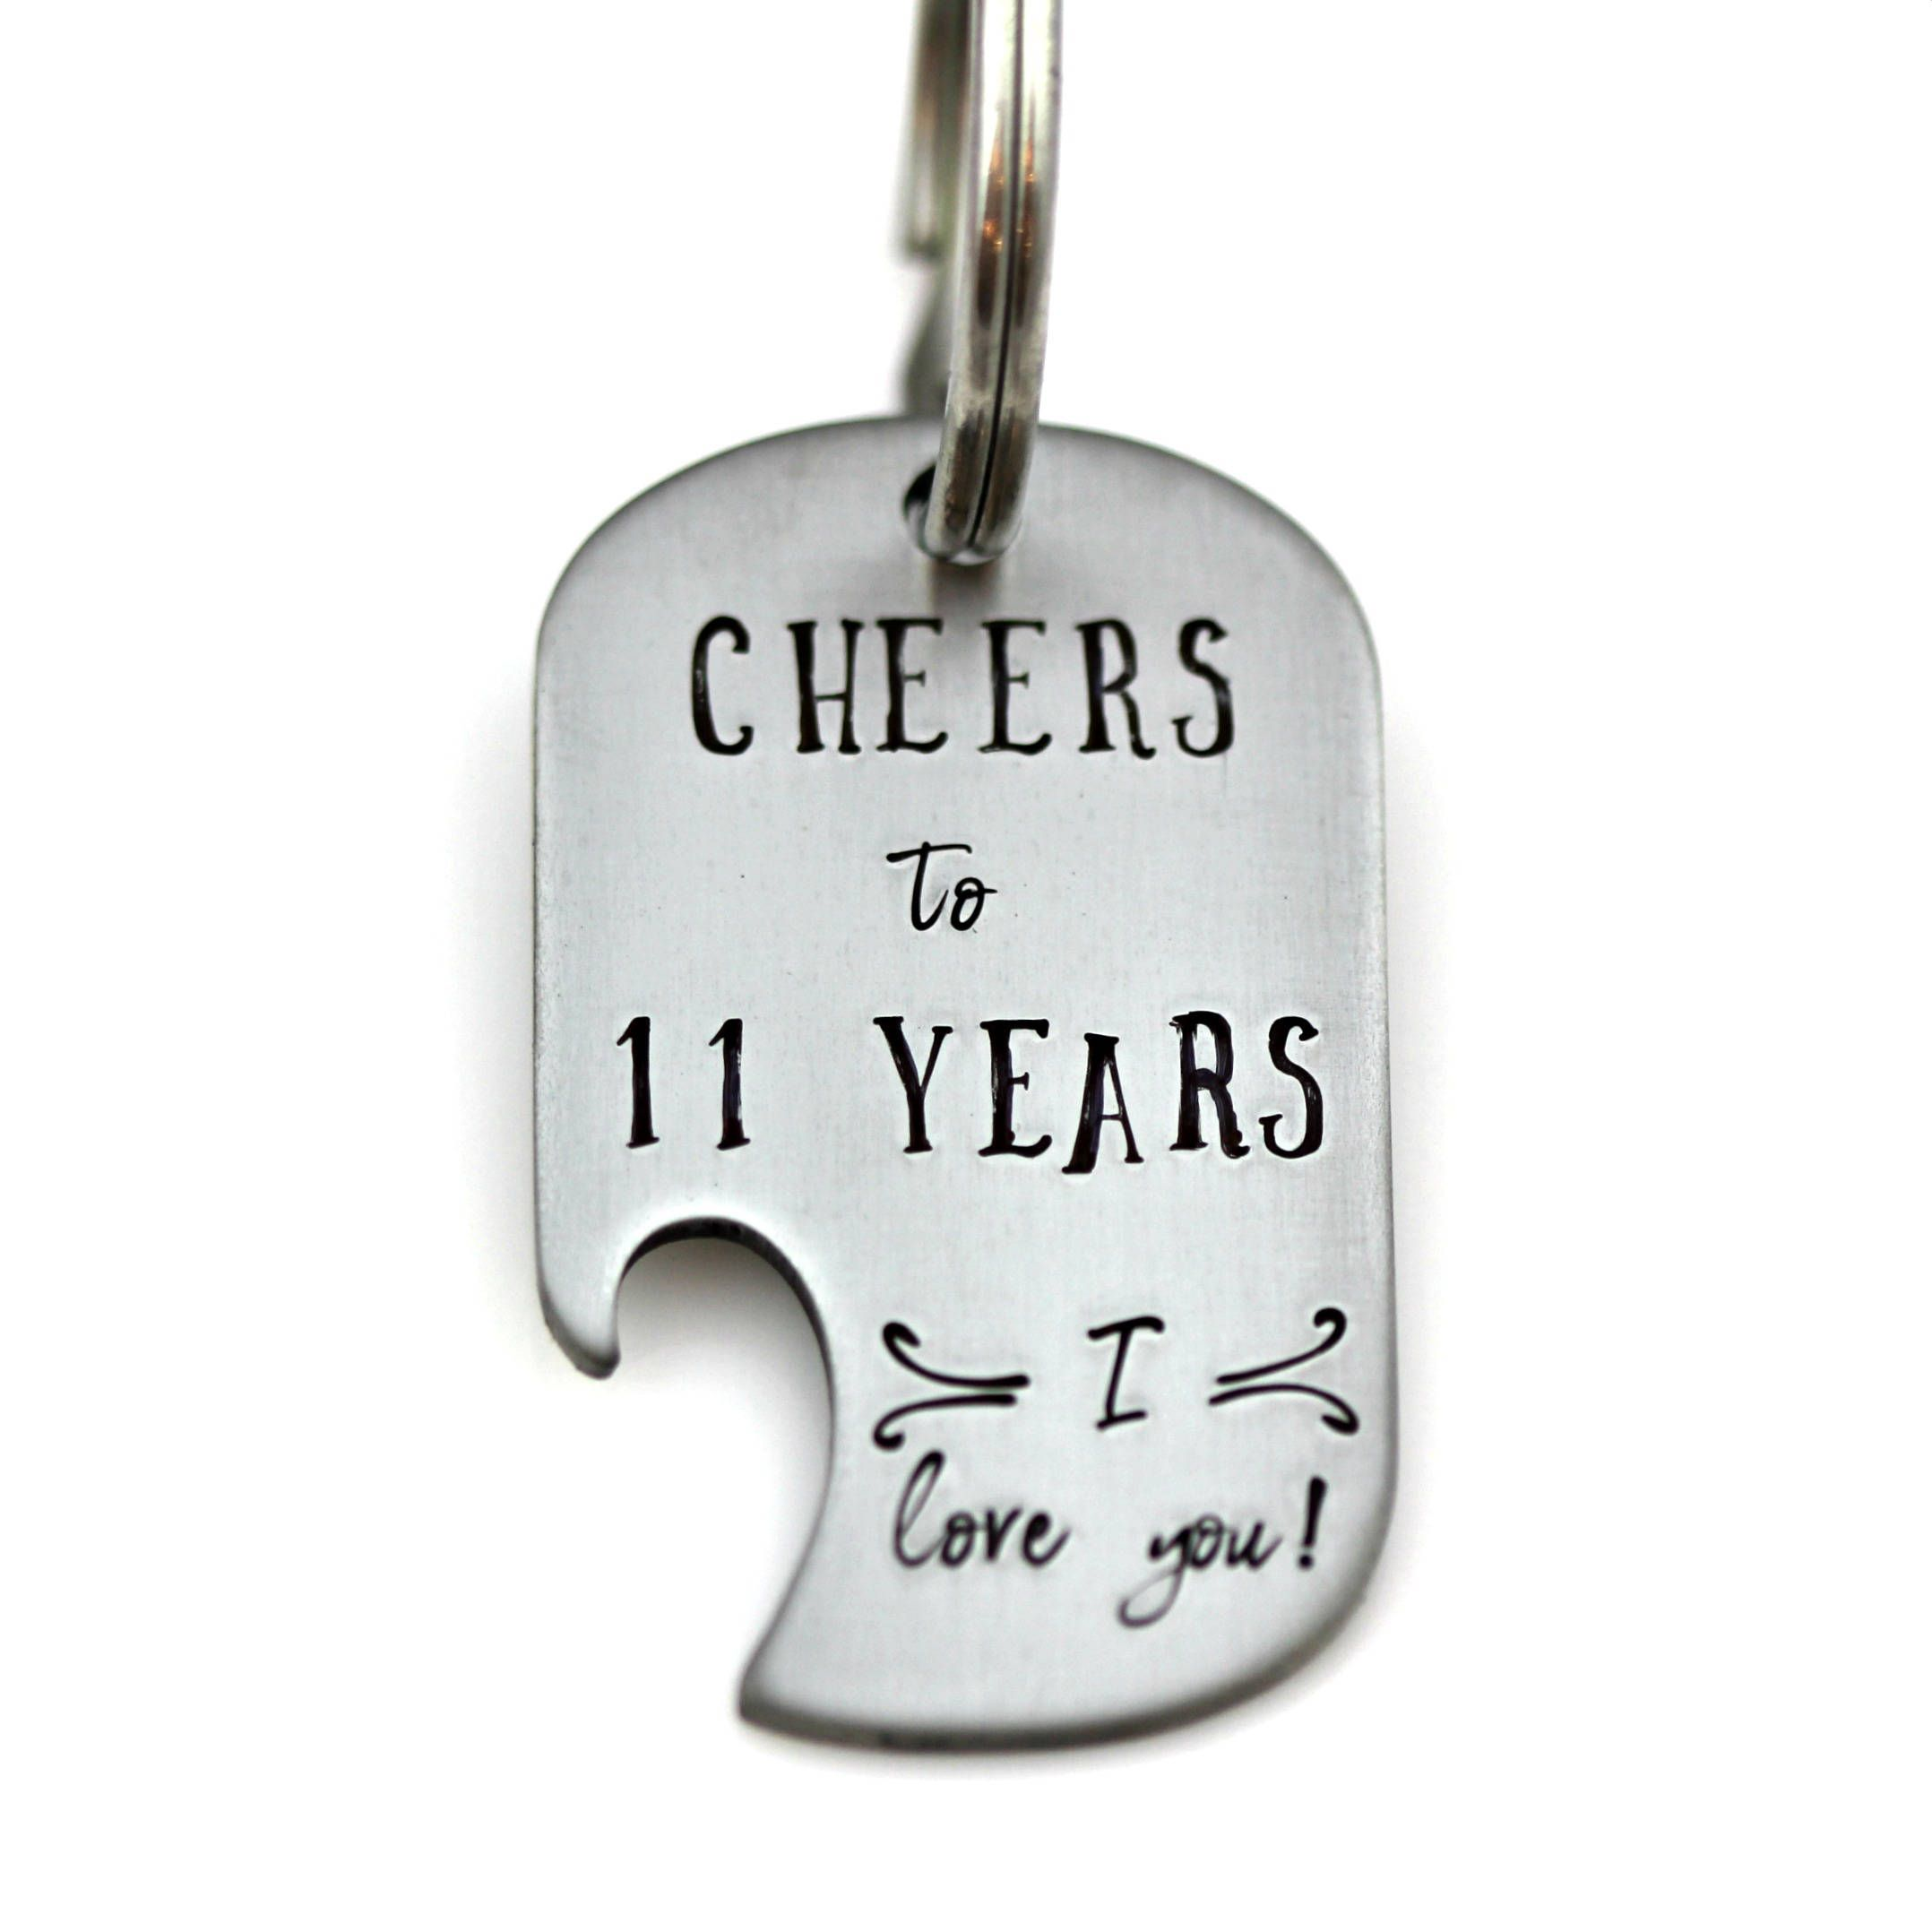 Celebrate With Traditional Stainless Steel For Your 11 Year Anniversary With This Hand 11 Year Anniversary 11th Anniversary Gifts Anniversary Gifts For Husband